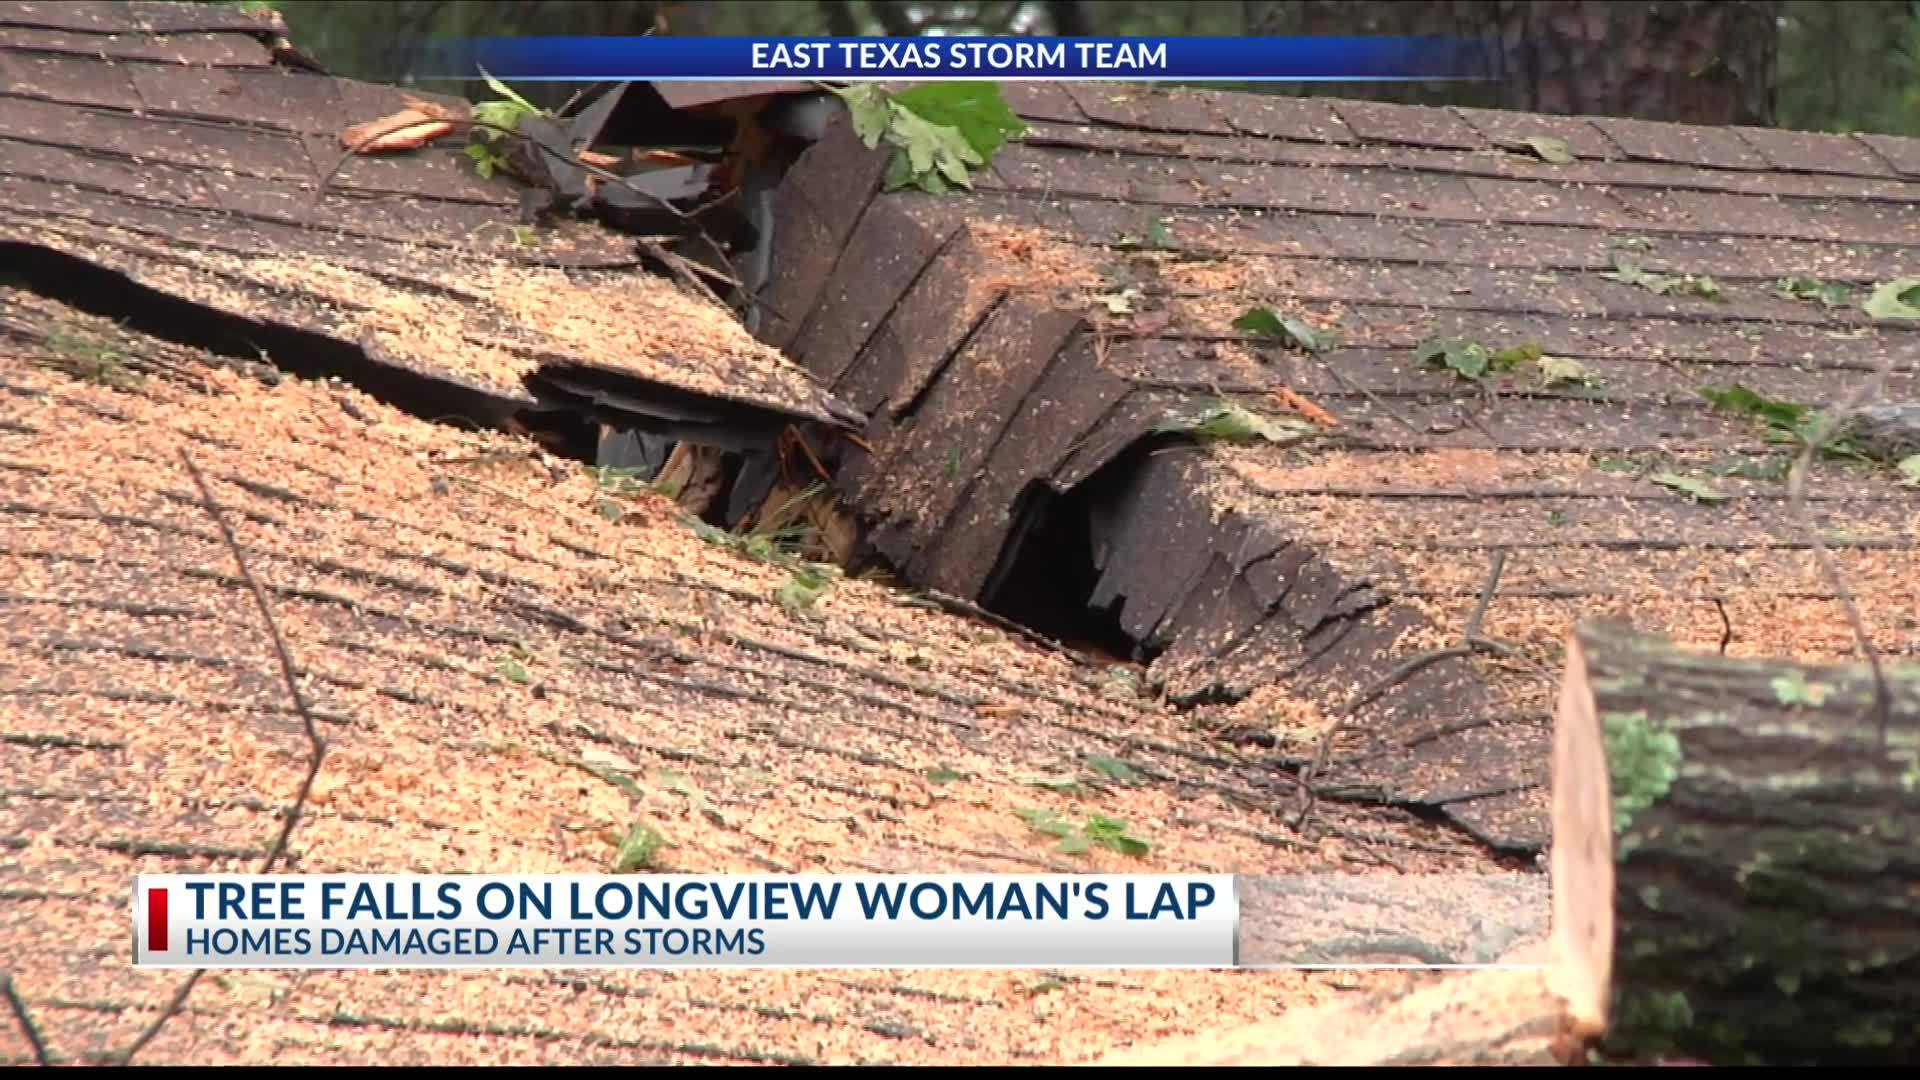 Tree_falls_on_Longview_woman_s_lap_7_20190509031340